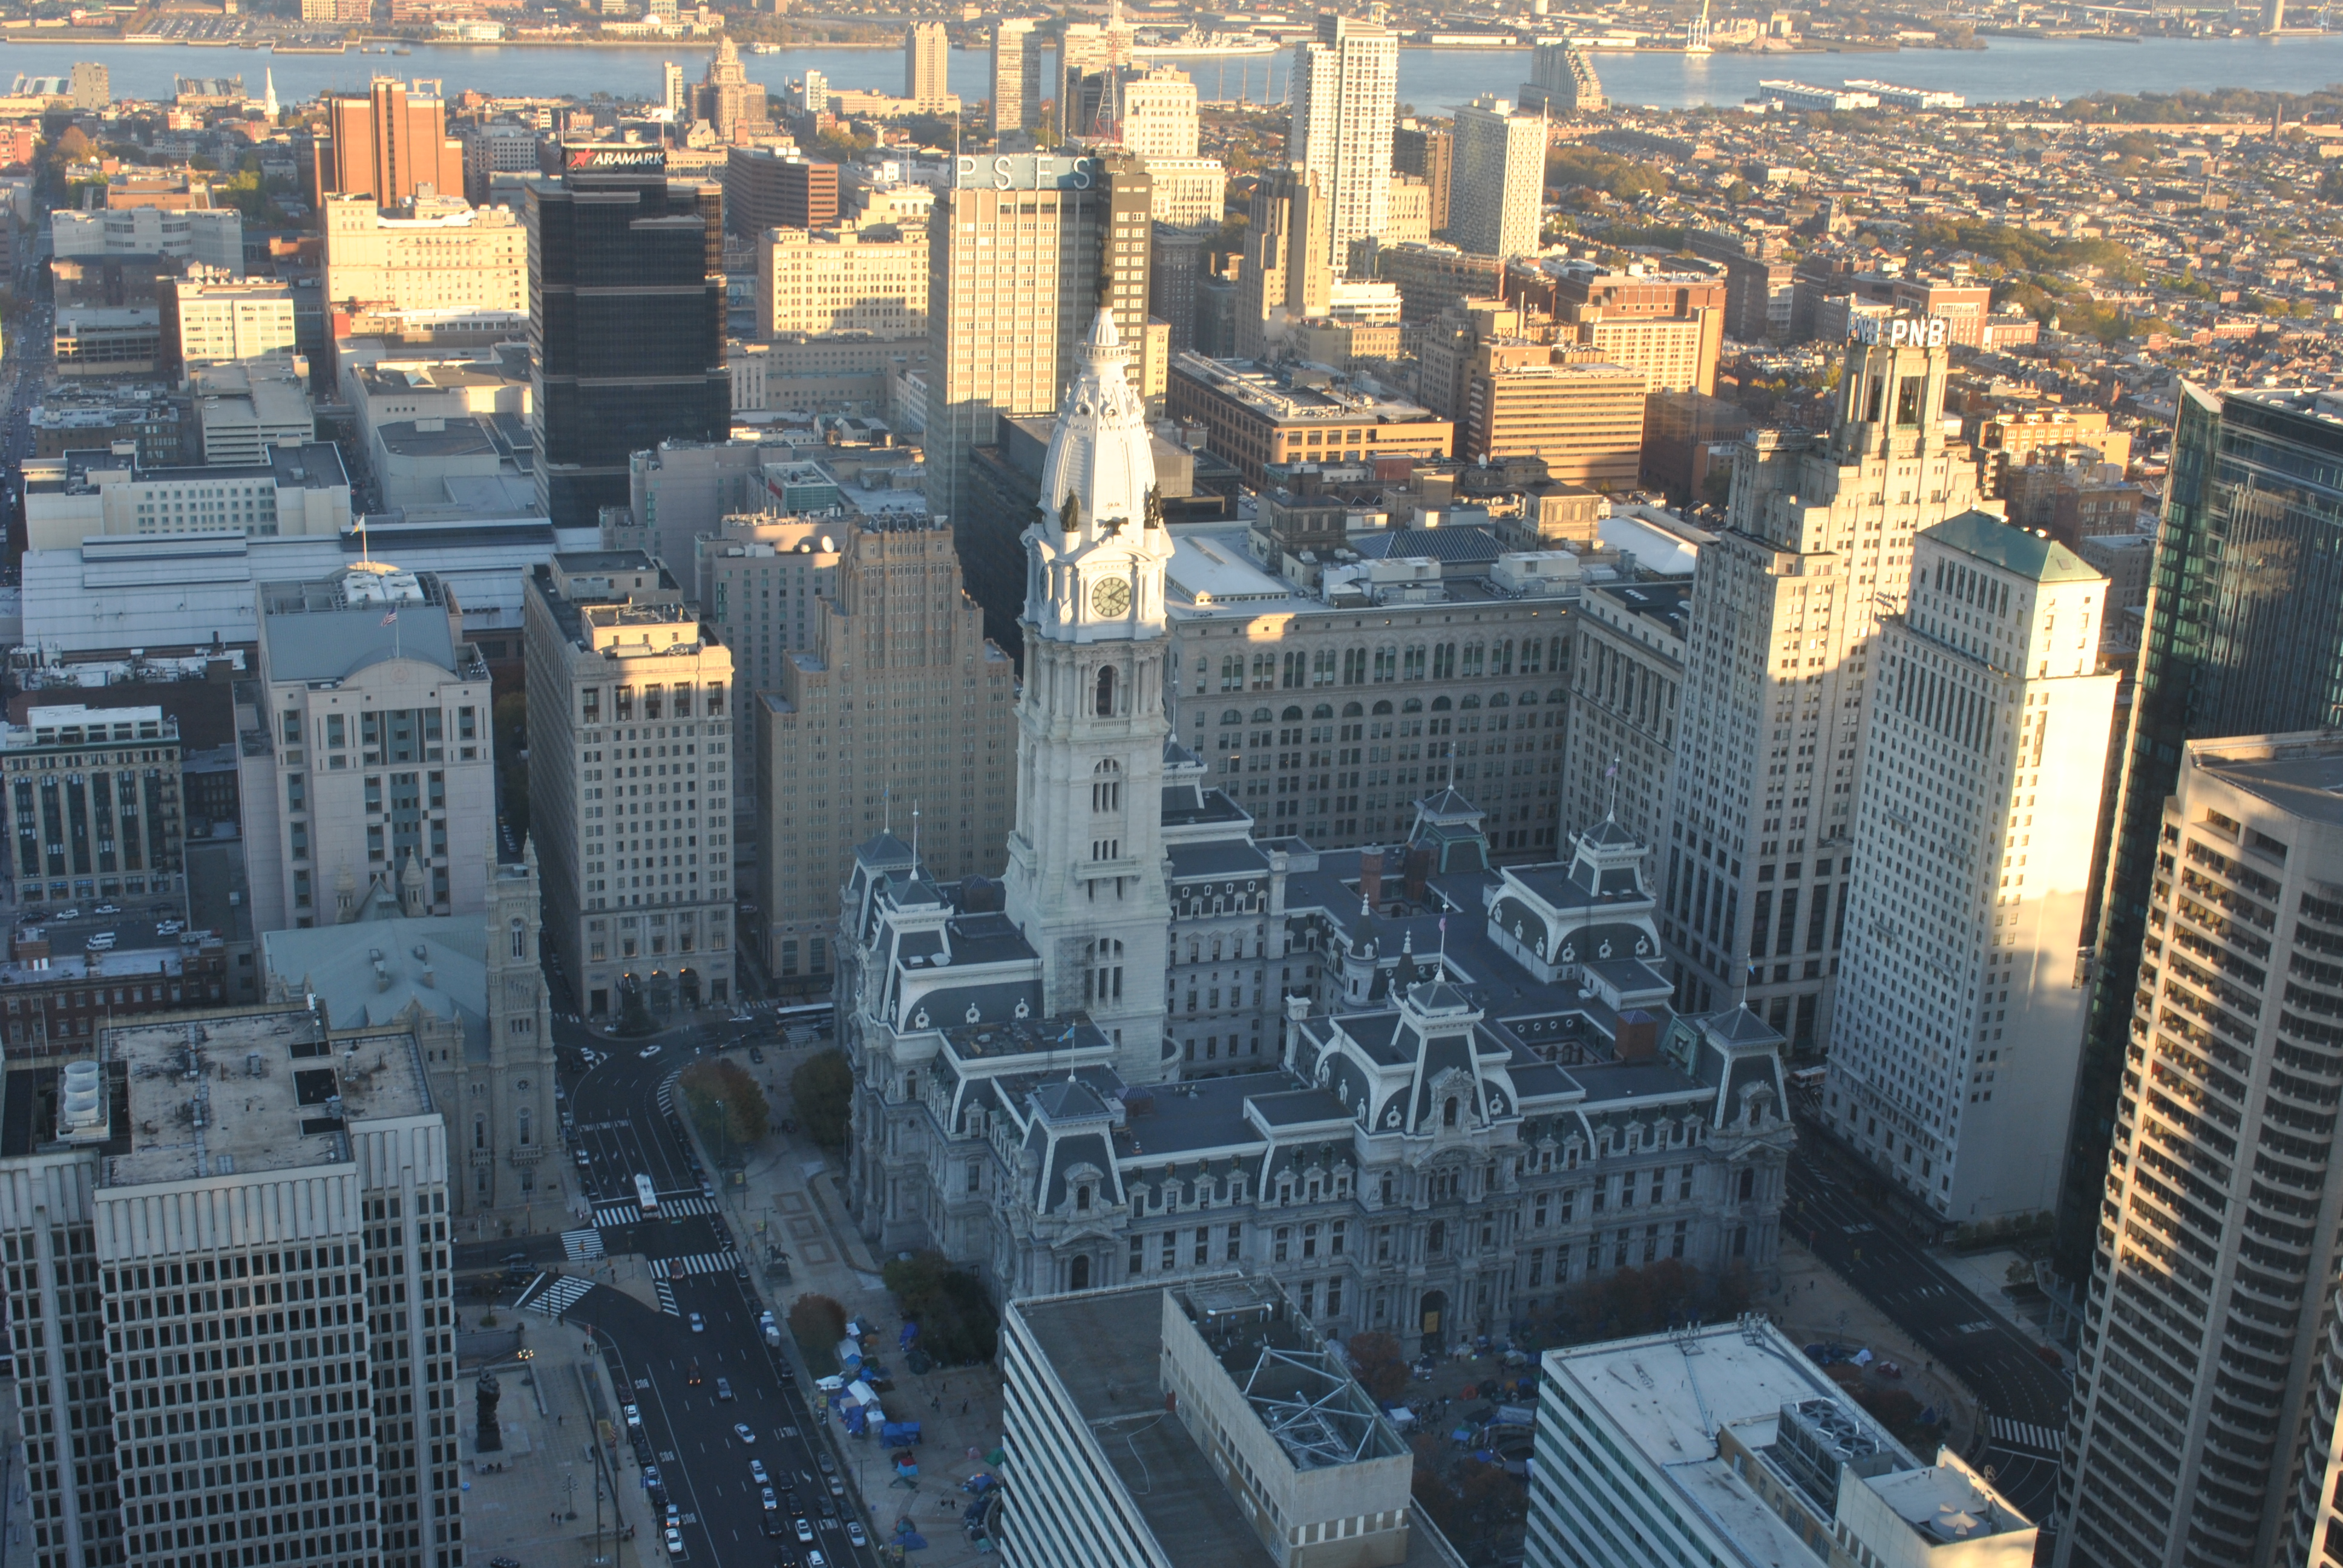 City Hall in Philadelphia as seen from above. Photo: AL DÍA Archives.